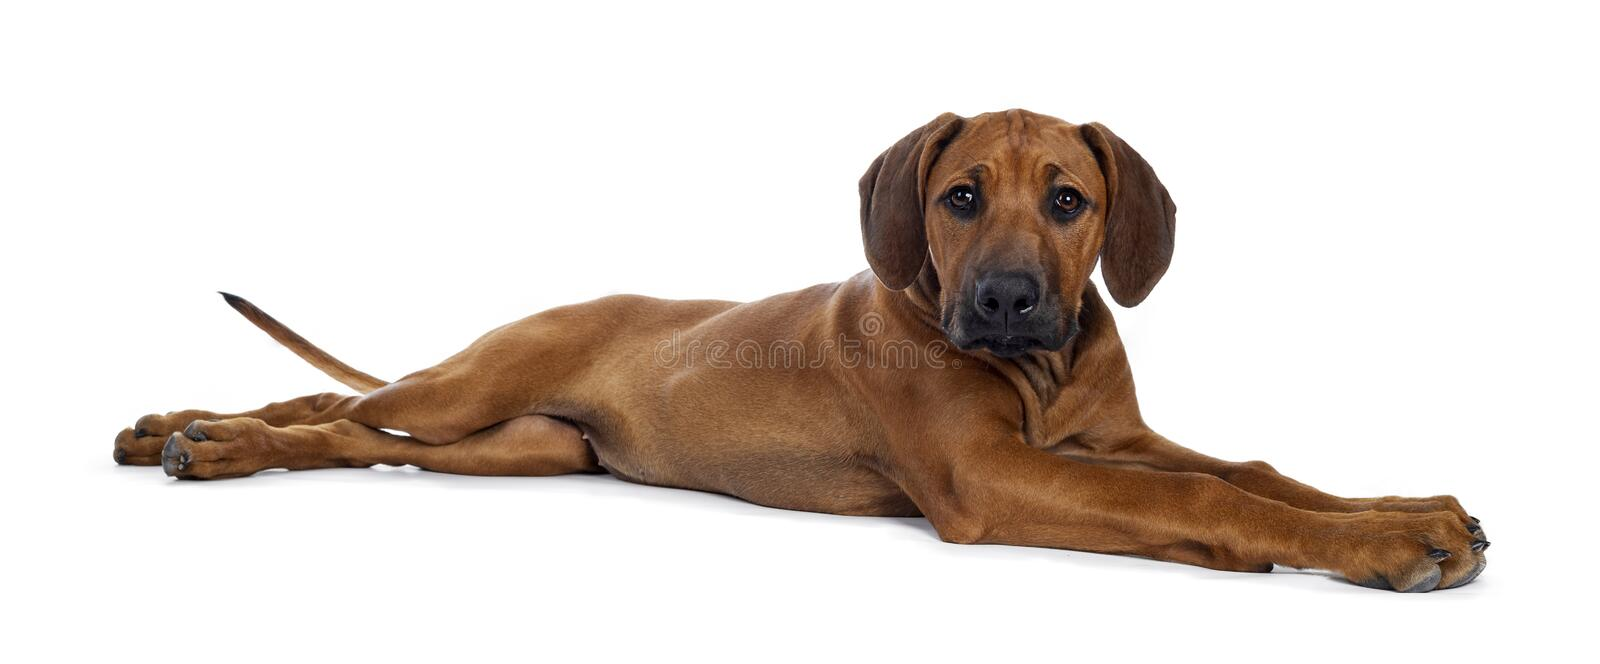 Sweet Rhodesian Ridgeback puppy on white. Cute weaten Rhodesian Ridgeback puppy laying down side ways. Looking to lens with sweet eyes and inoocent face royalty free stock photos